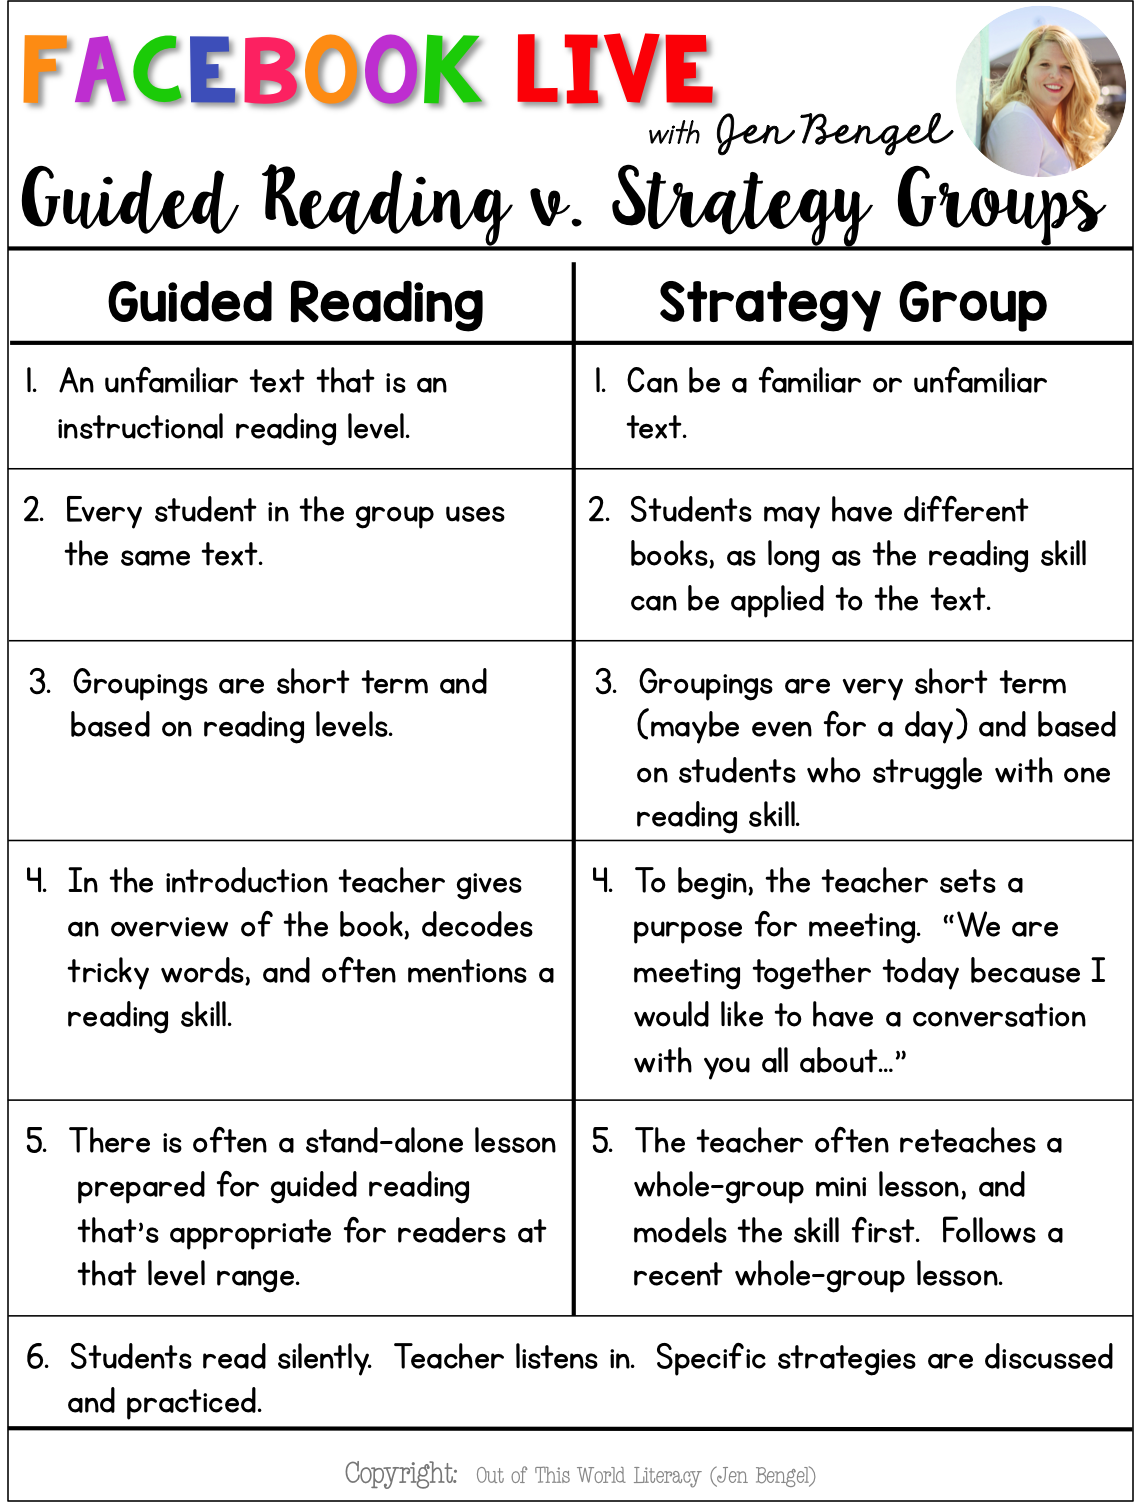 Guided Reading Strategies 18 4 User Guide Manual That Easy To Read